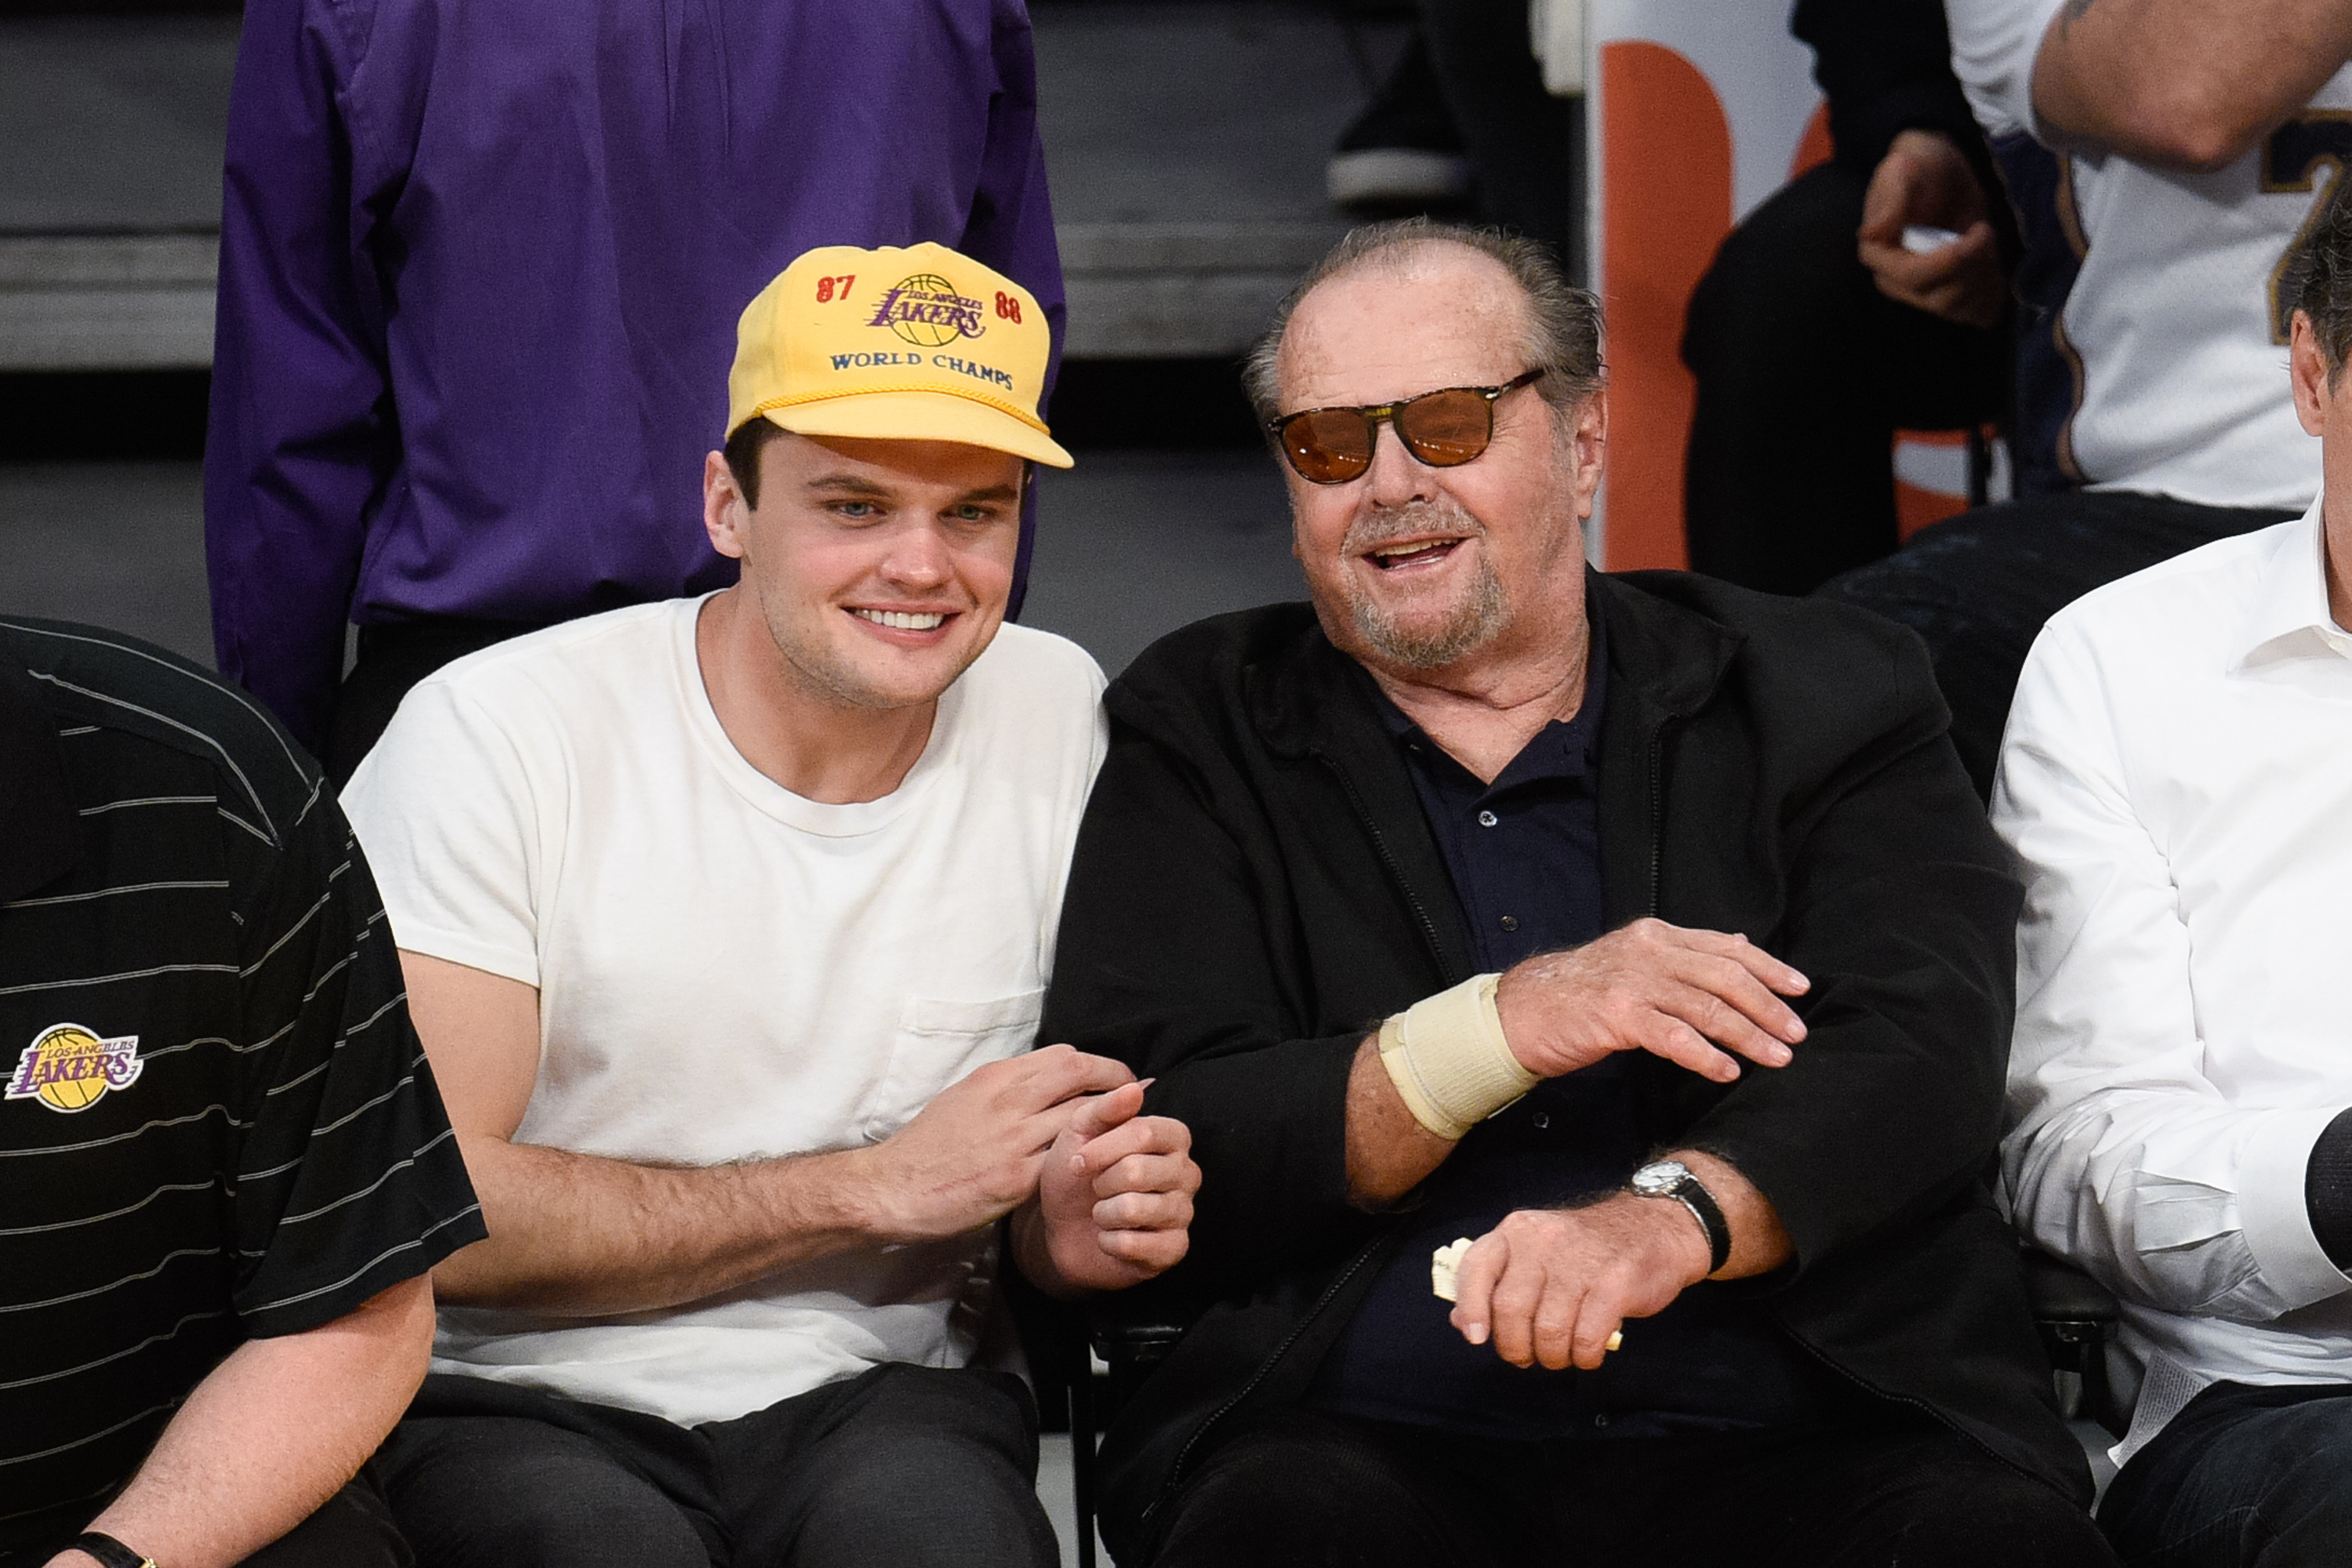 See Leonardo Dicaprio Lookalike Jack Nicholson S Son Photos Time Leonardo dicaprio's entourage would agree that he is biggest celebrity of the bunch. https time com 4715496 leo dicaprio ray nicholson lookalike